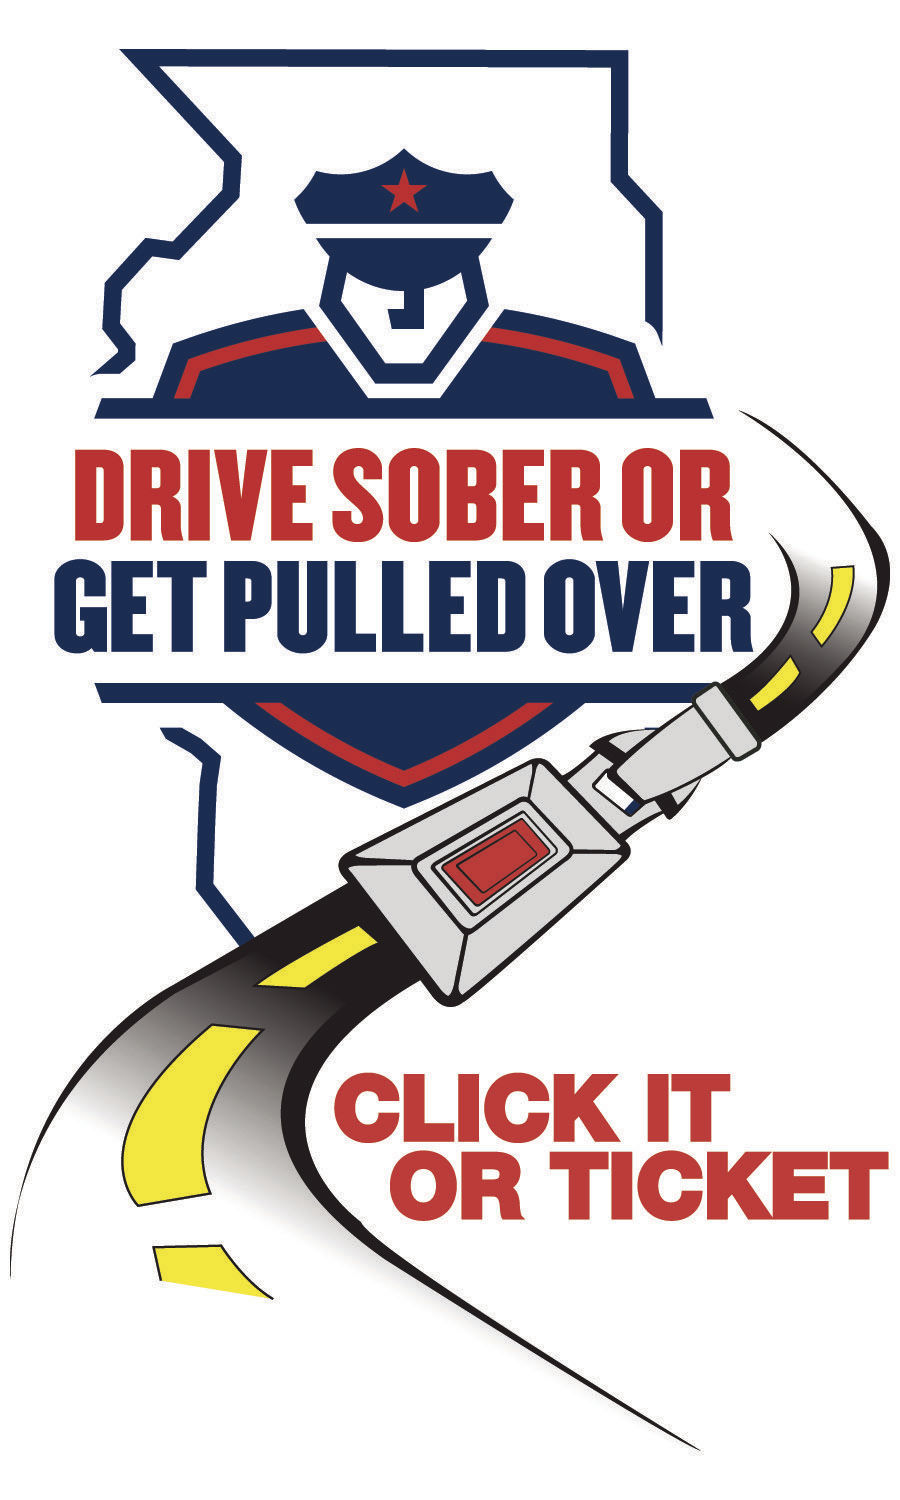 The Decatur Police Department Announces Labor Day Drive Sober or Get Pulled Over Campaign Results